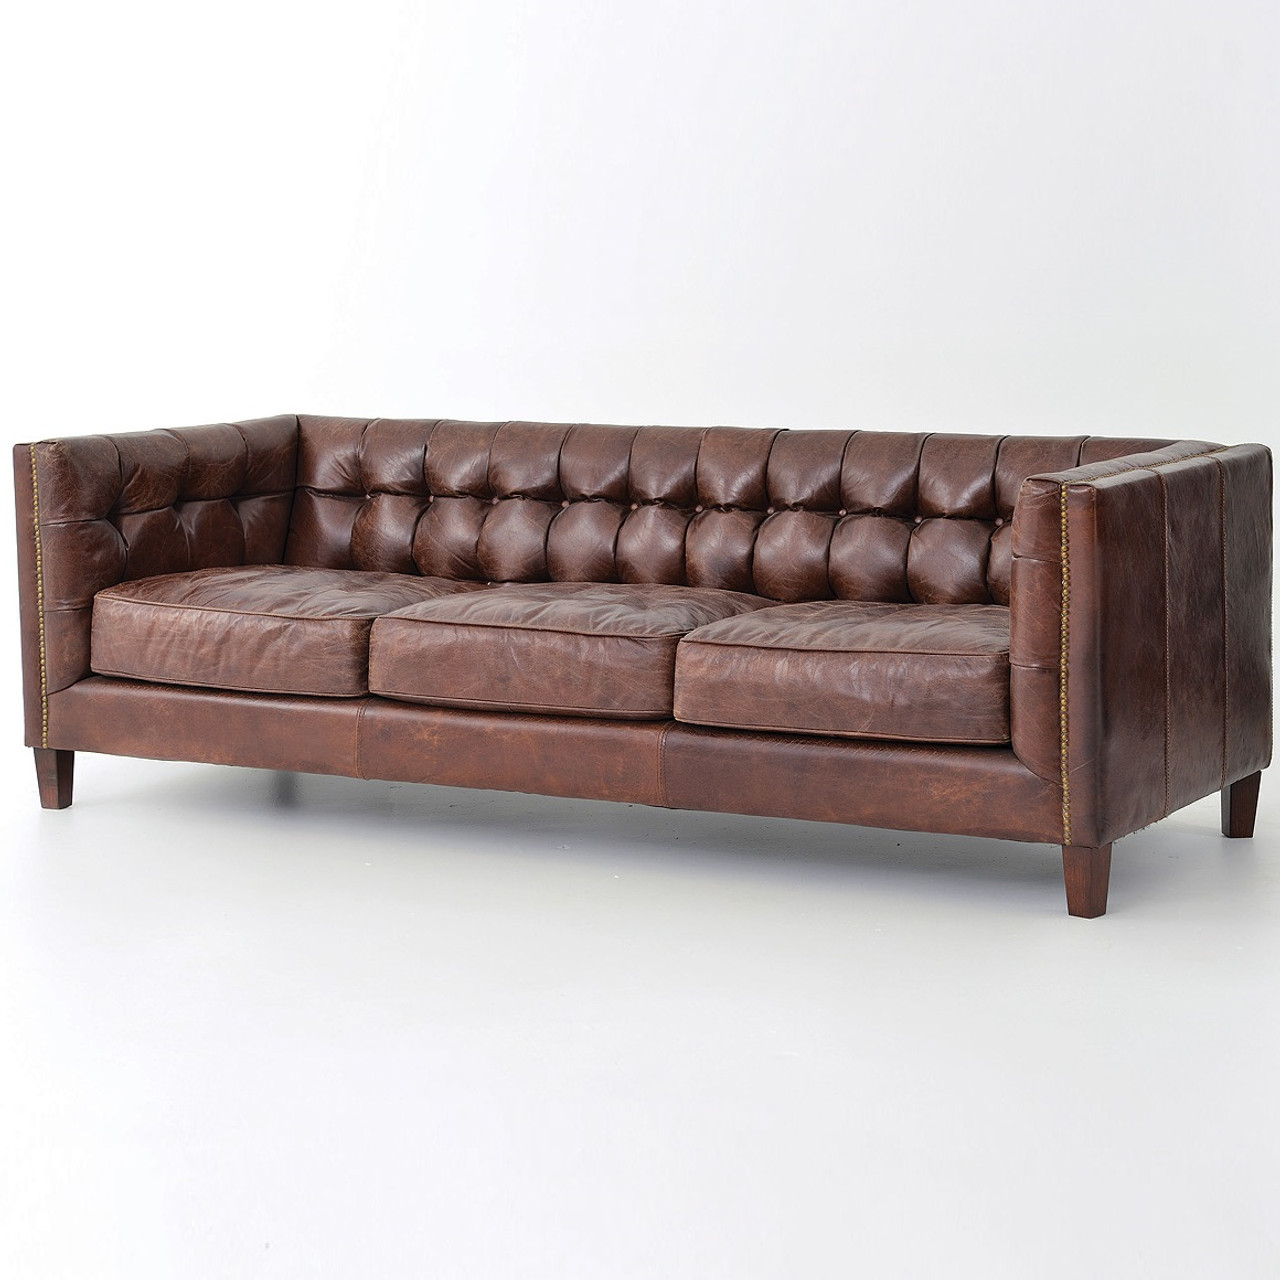 tufted brown leather sofa club uk abbott vintage cigar zin home